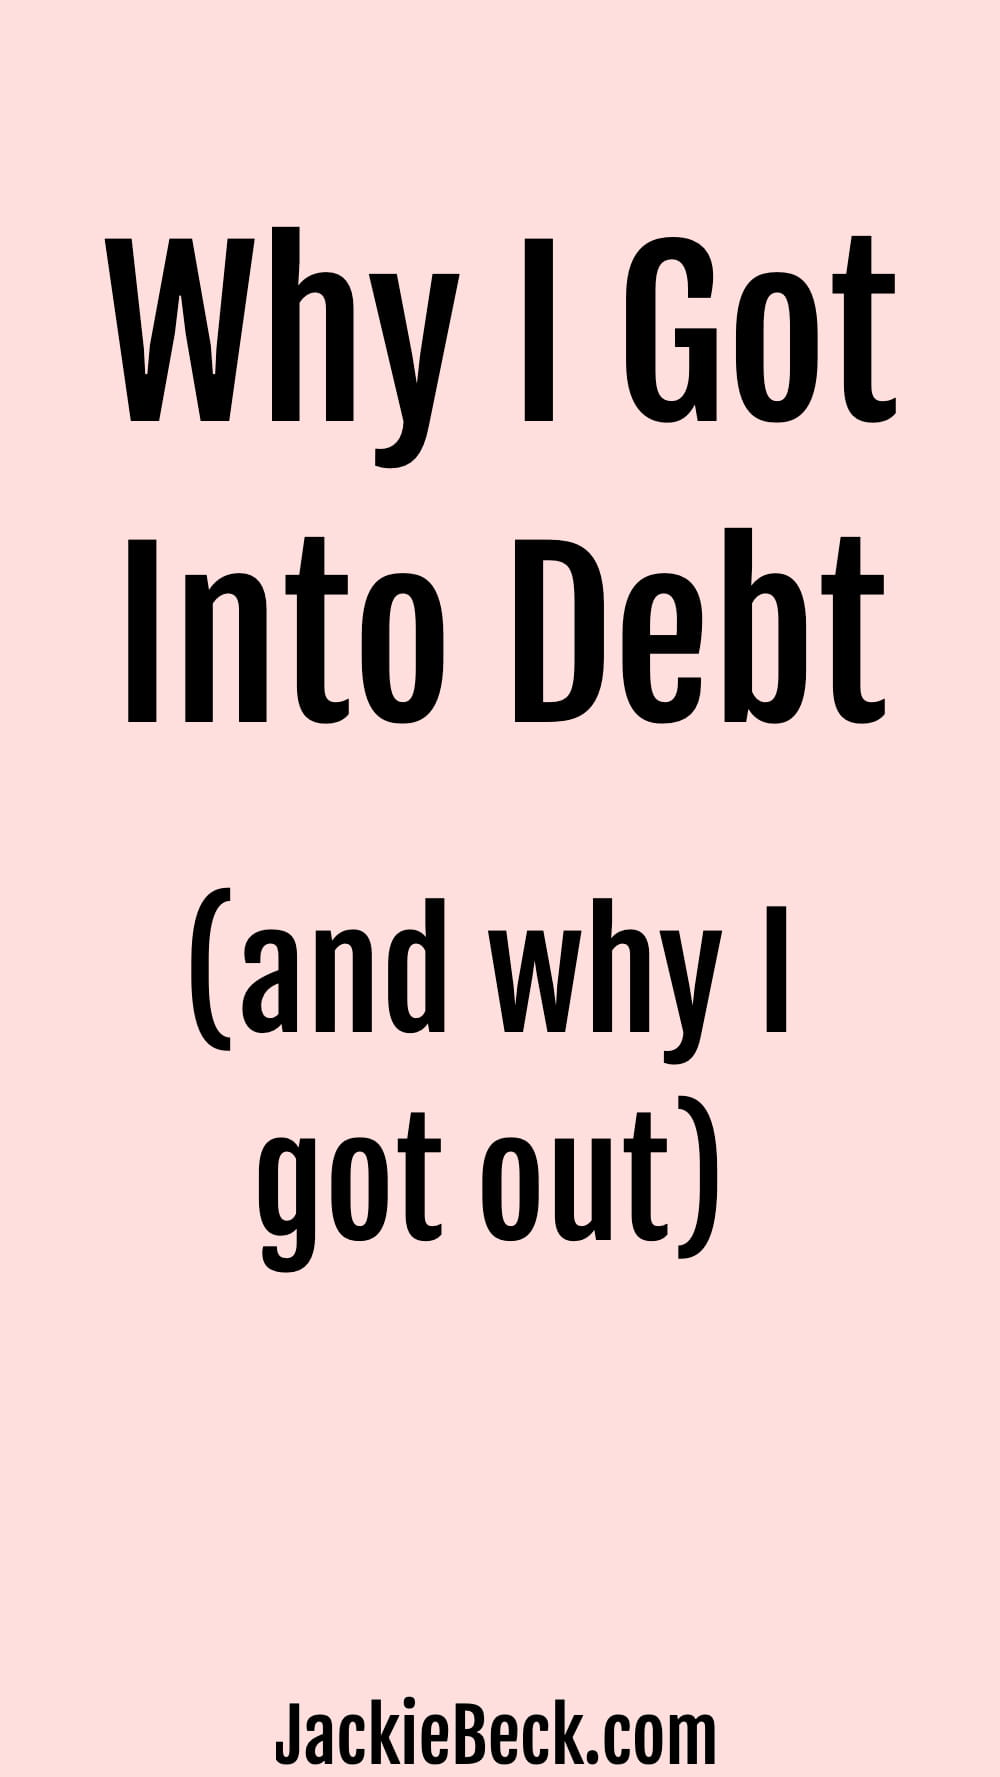 Reasons why I got into debt (and why I got out)